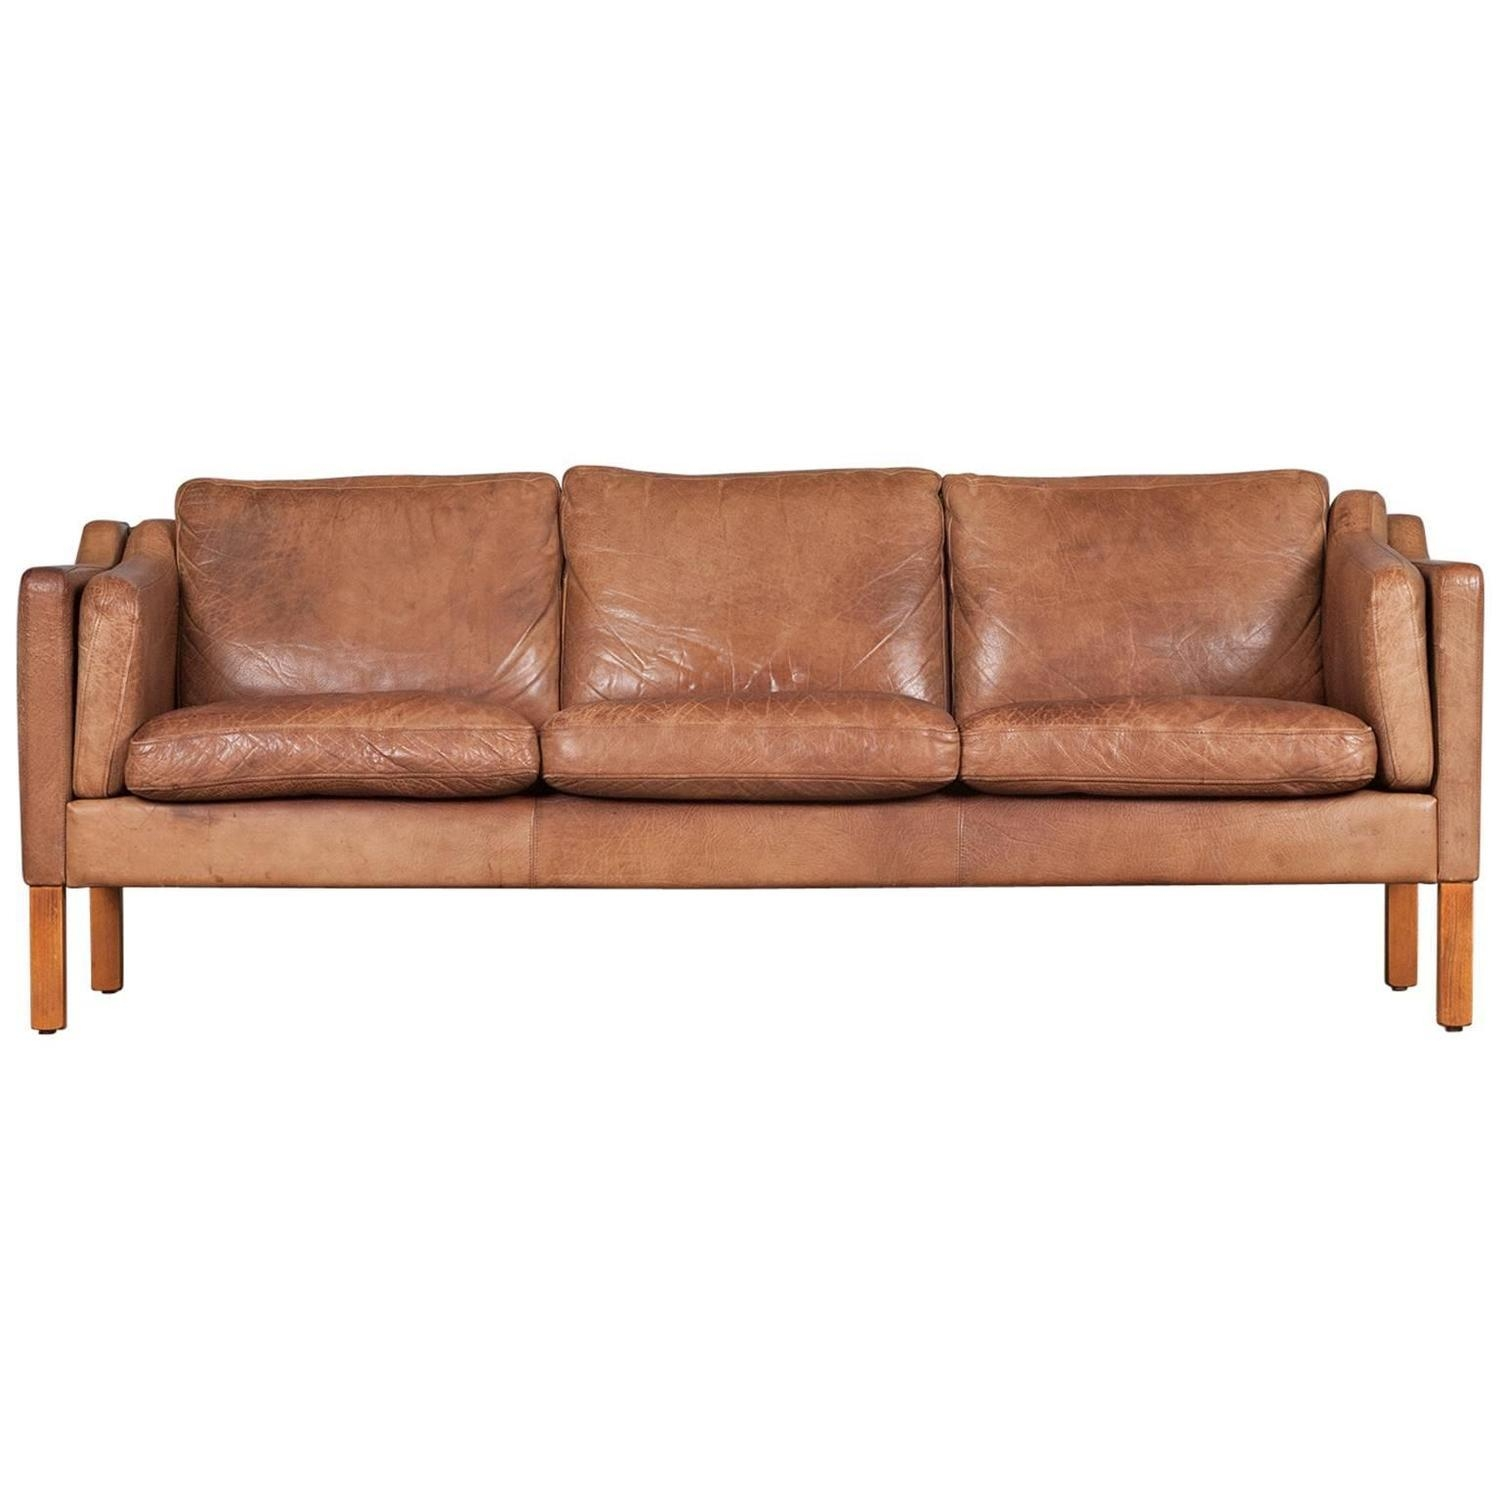 2018 Latest Camel Colored Leather Sofas Sofa Ideas